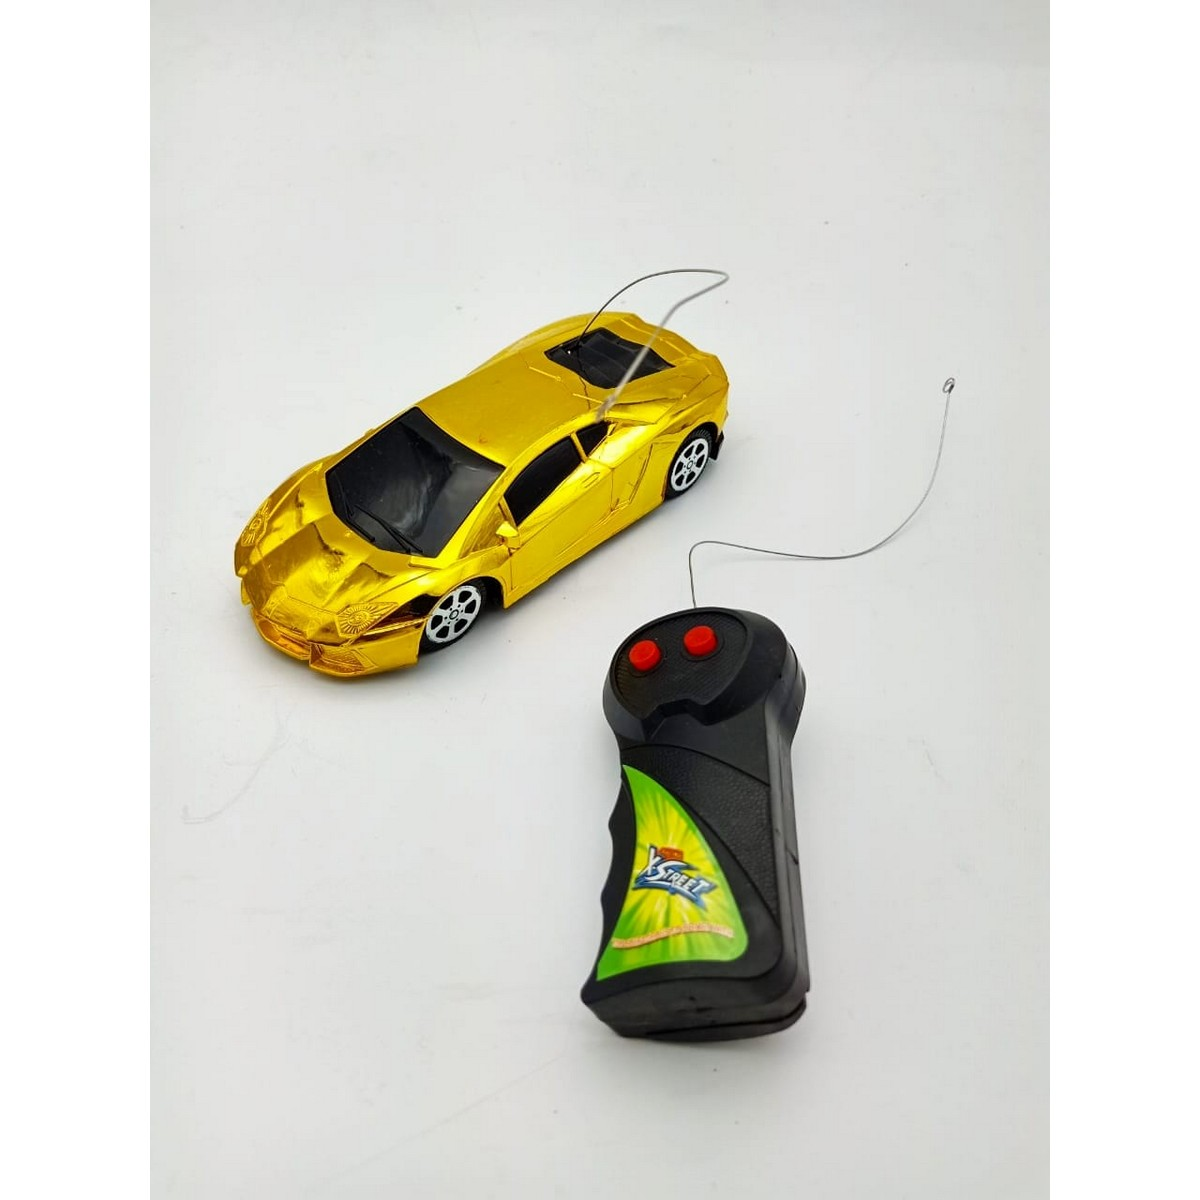 Remote control car toy for kids(boys and girls) sports car remote control. sports car remote control for kids.R/C toy